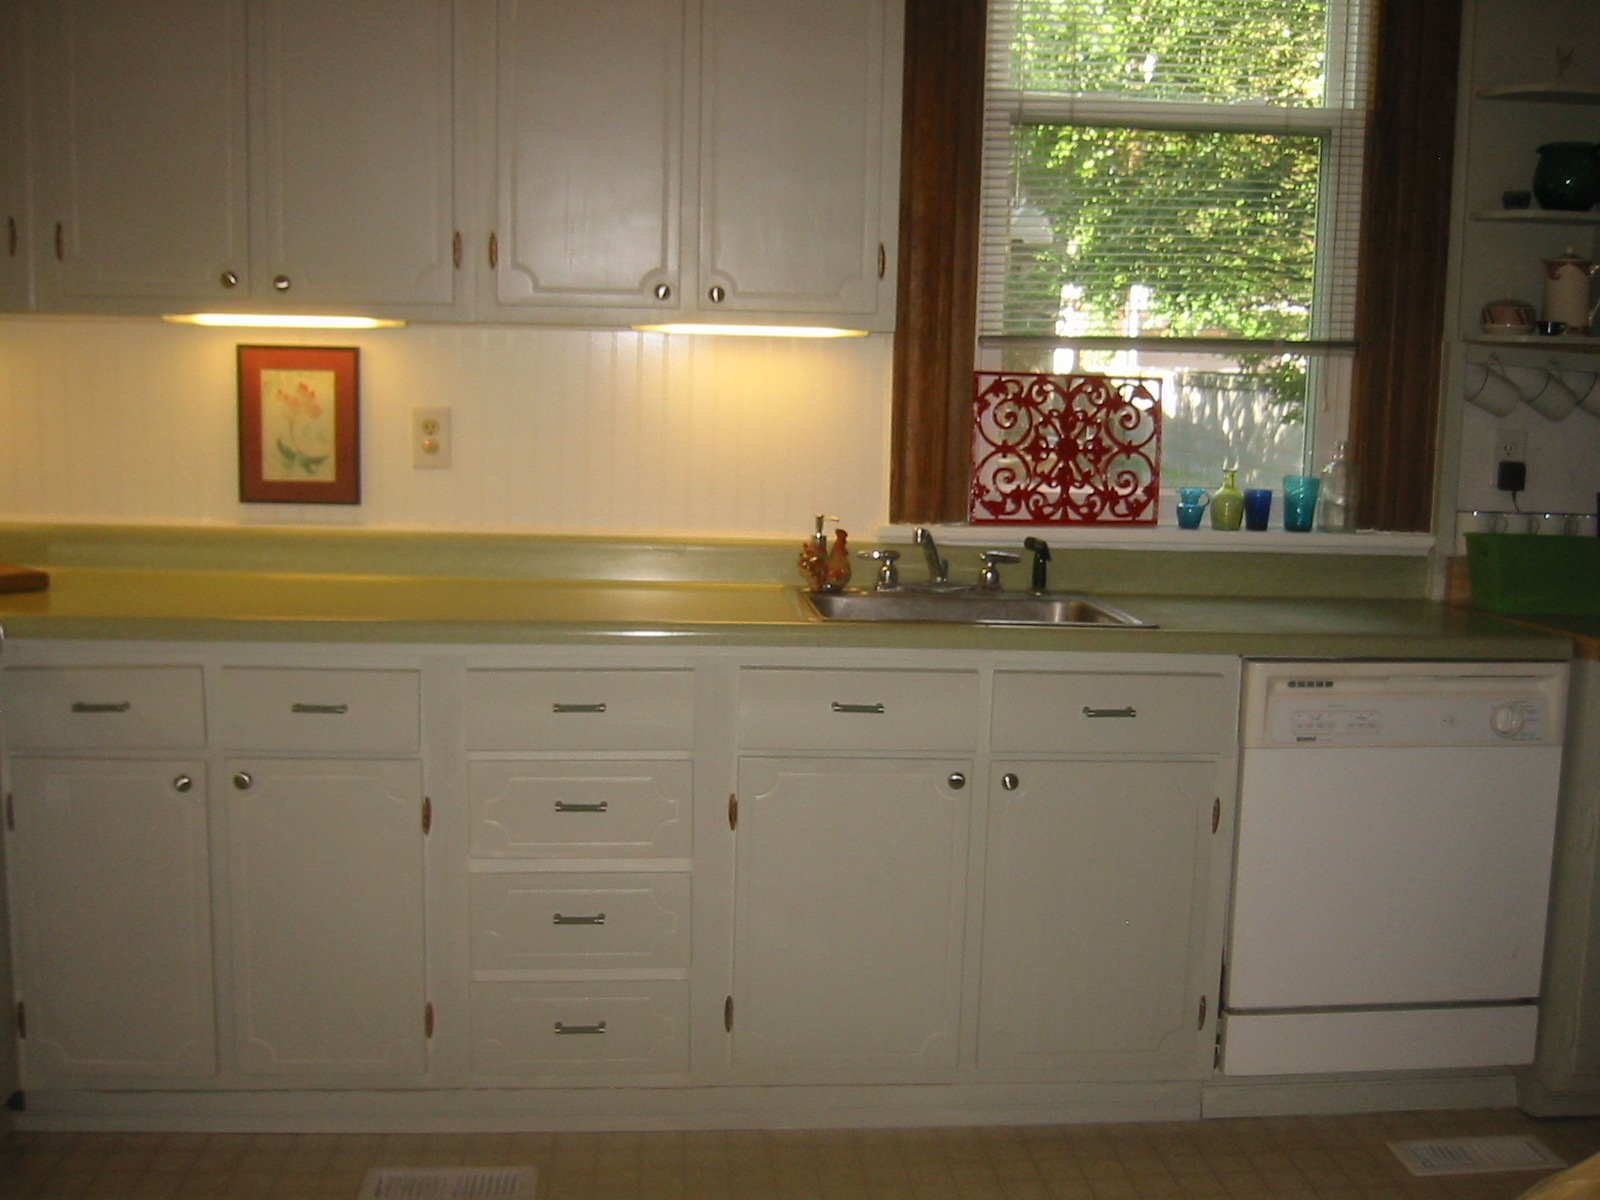 this kitchen probably hadn u0027t been touched since the 40 u0027s 50 u0027s  plywood cabinets with a horrible dark wood stain  sheshe the home magician  to paint or not to paint  those ugly      rh   sheshehome blogspot com